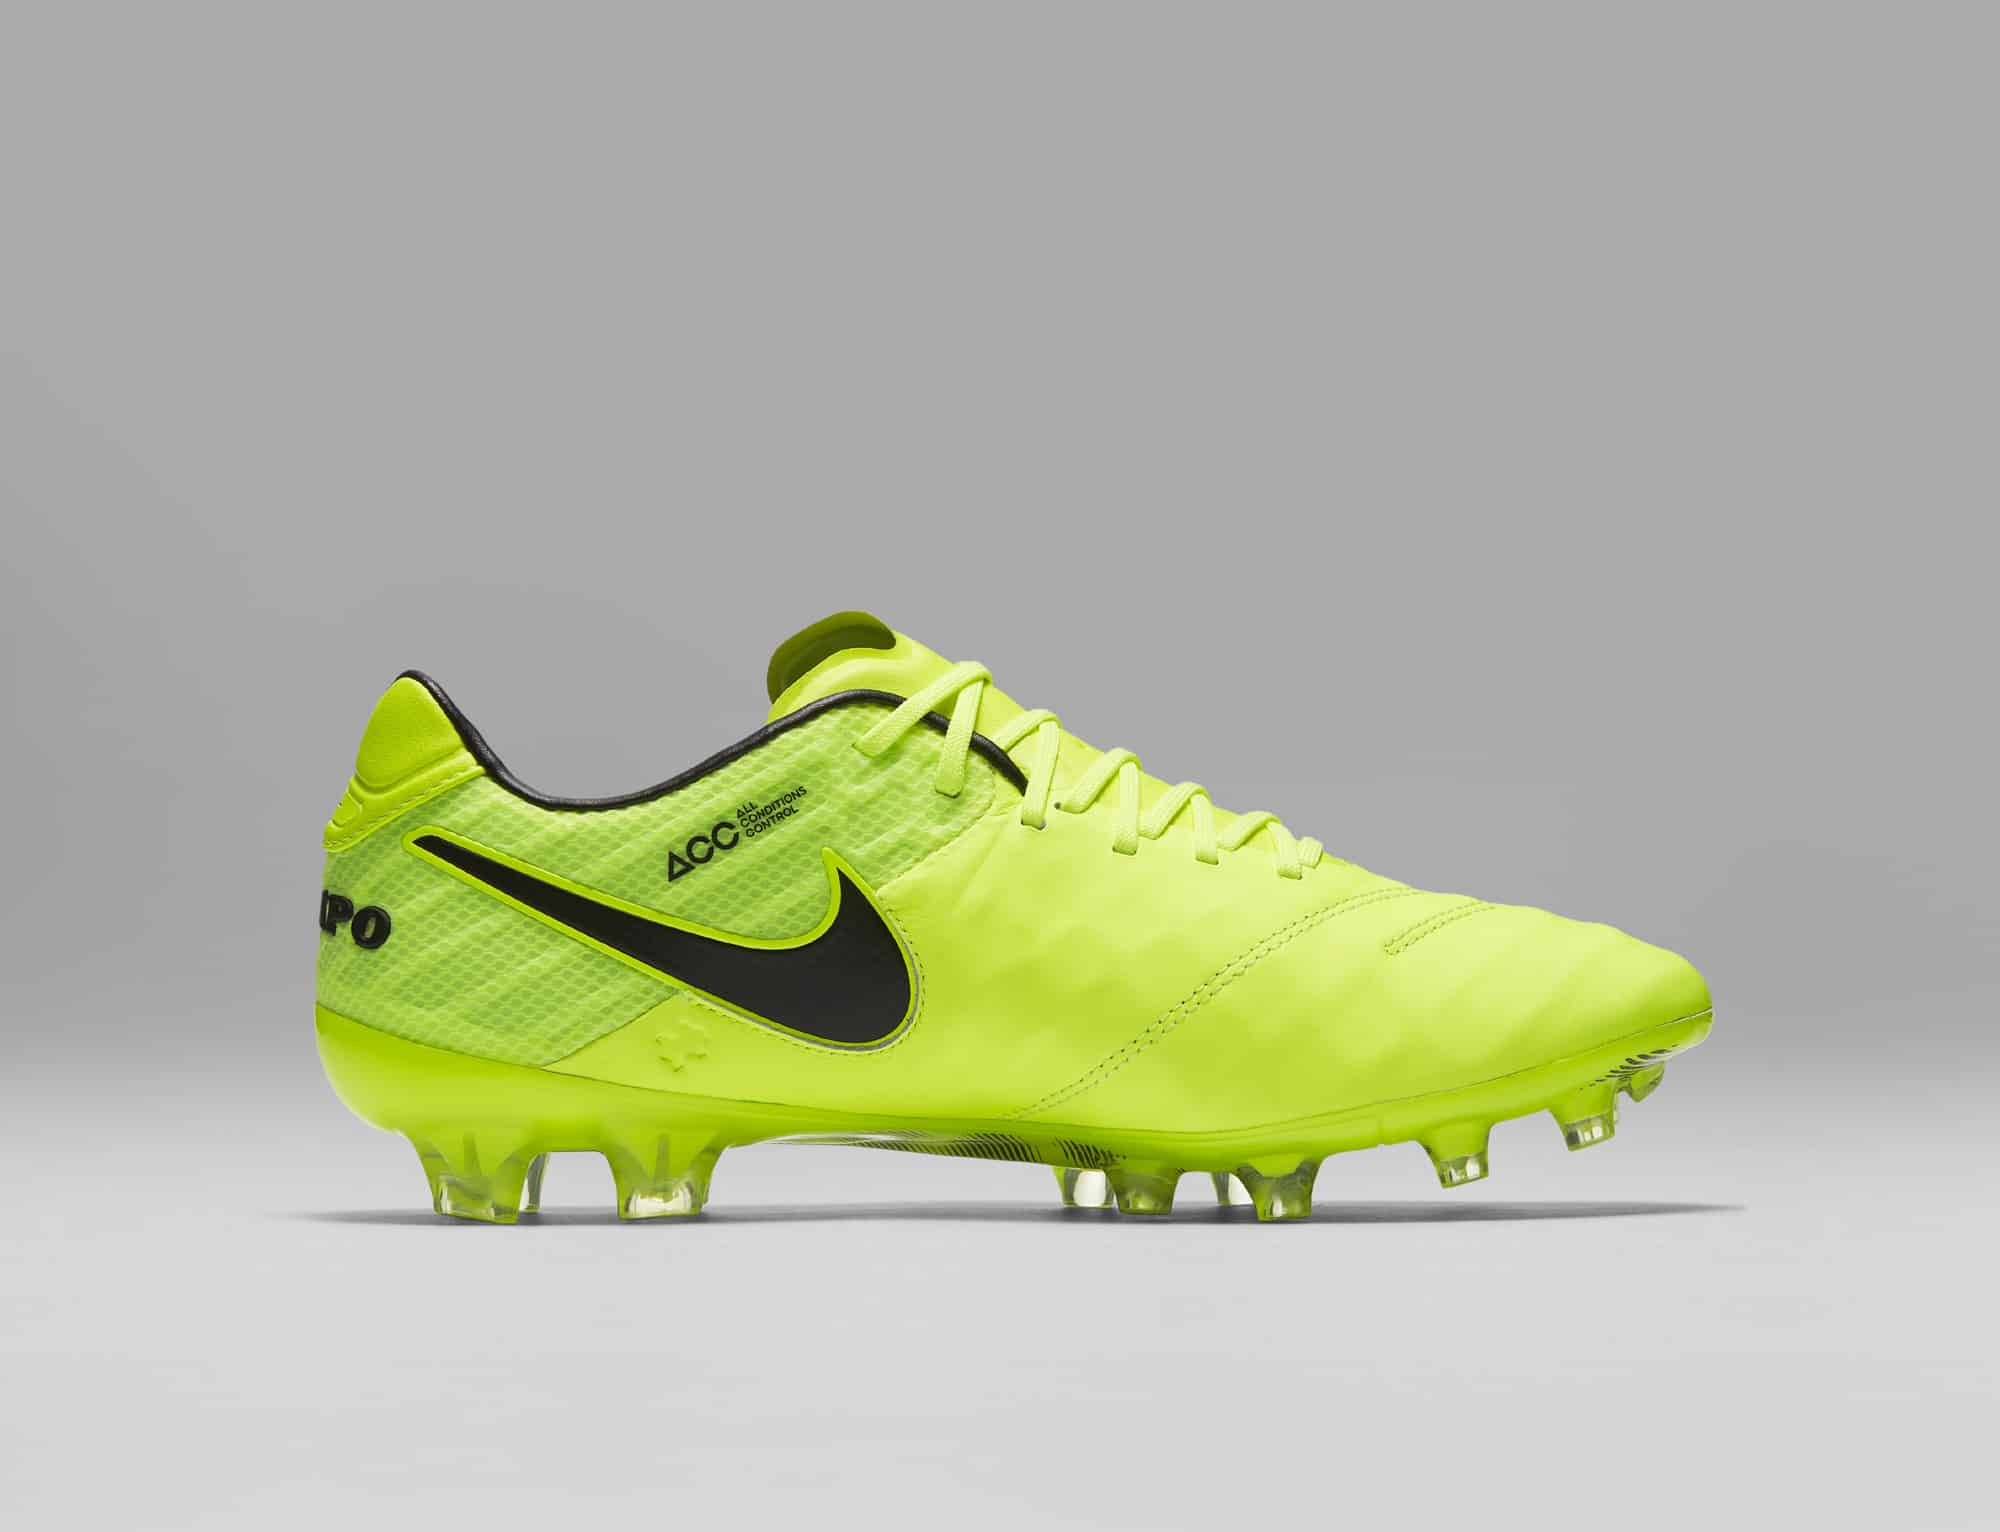 chaussures-football-Nike-Tiempo-Legend-6-Femmes-Women-Radiation-Flare-img1